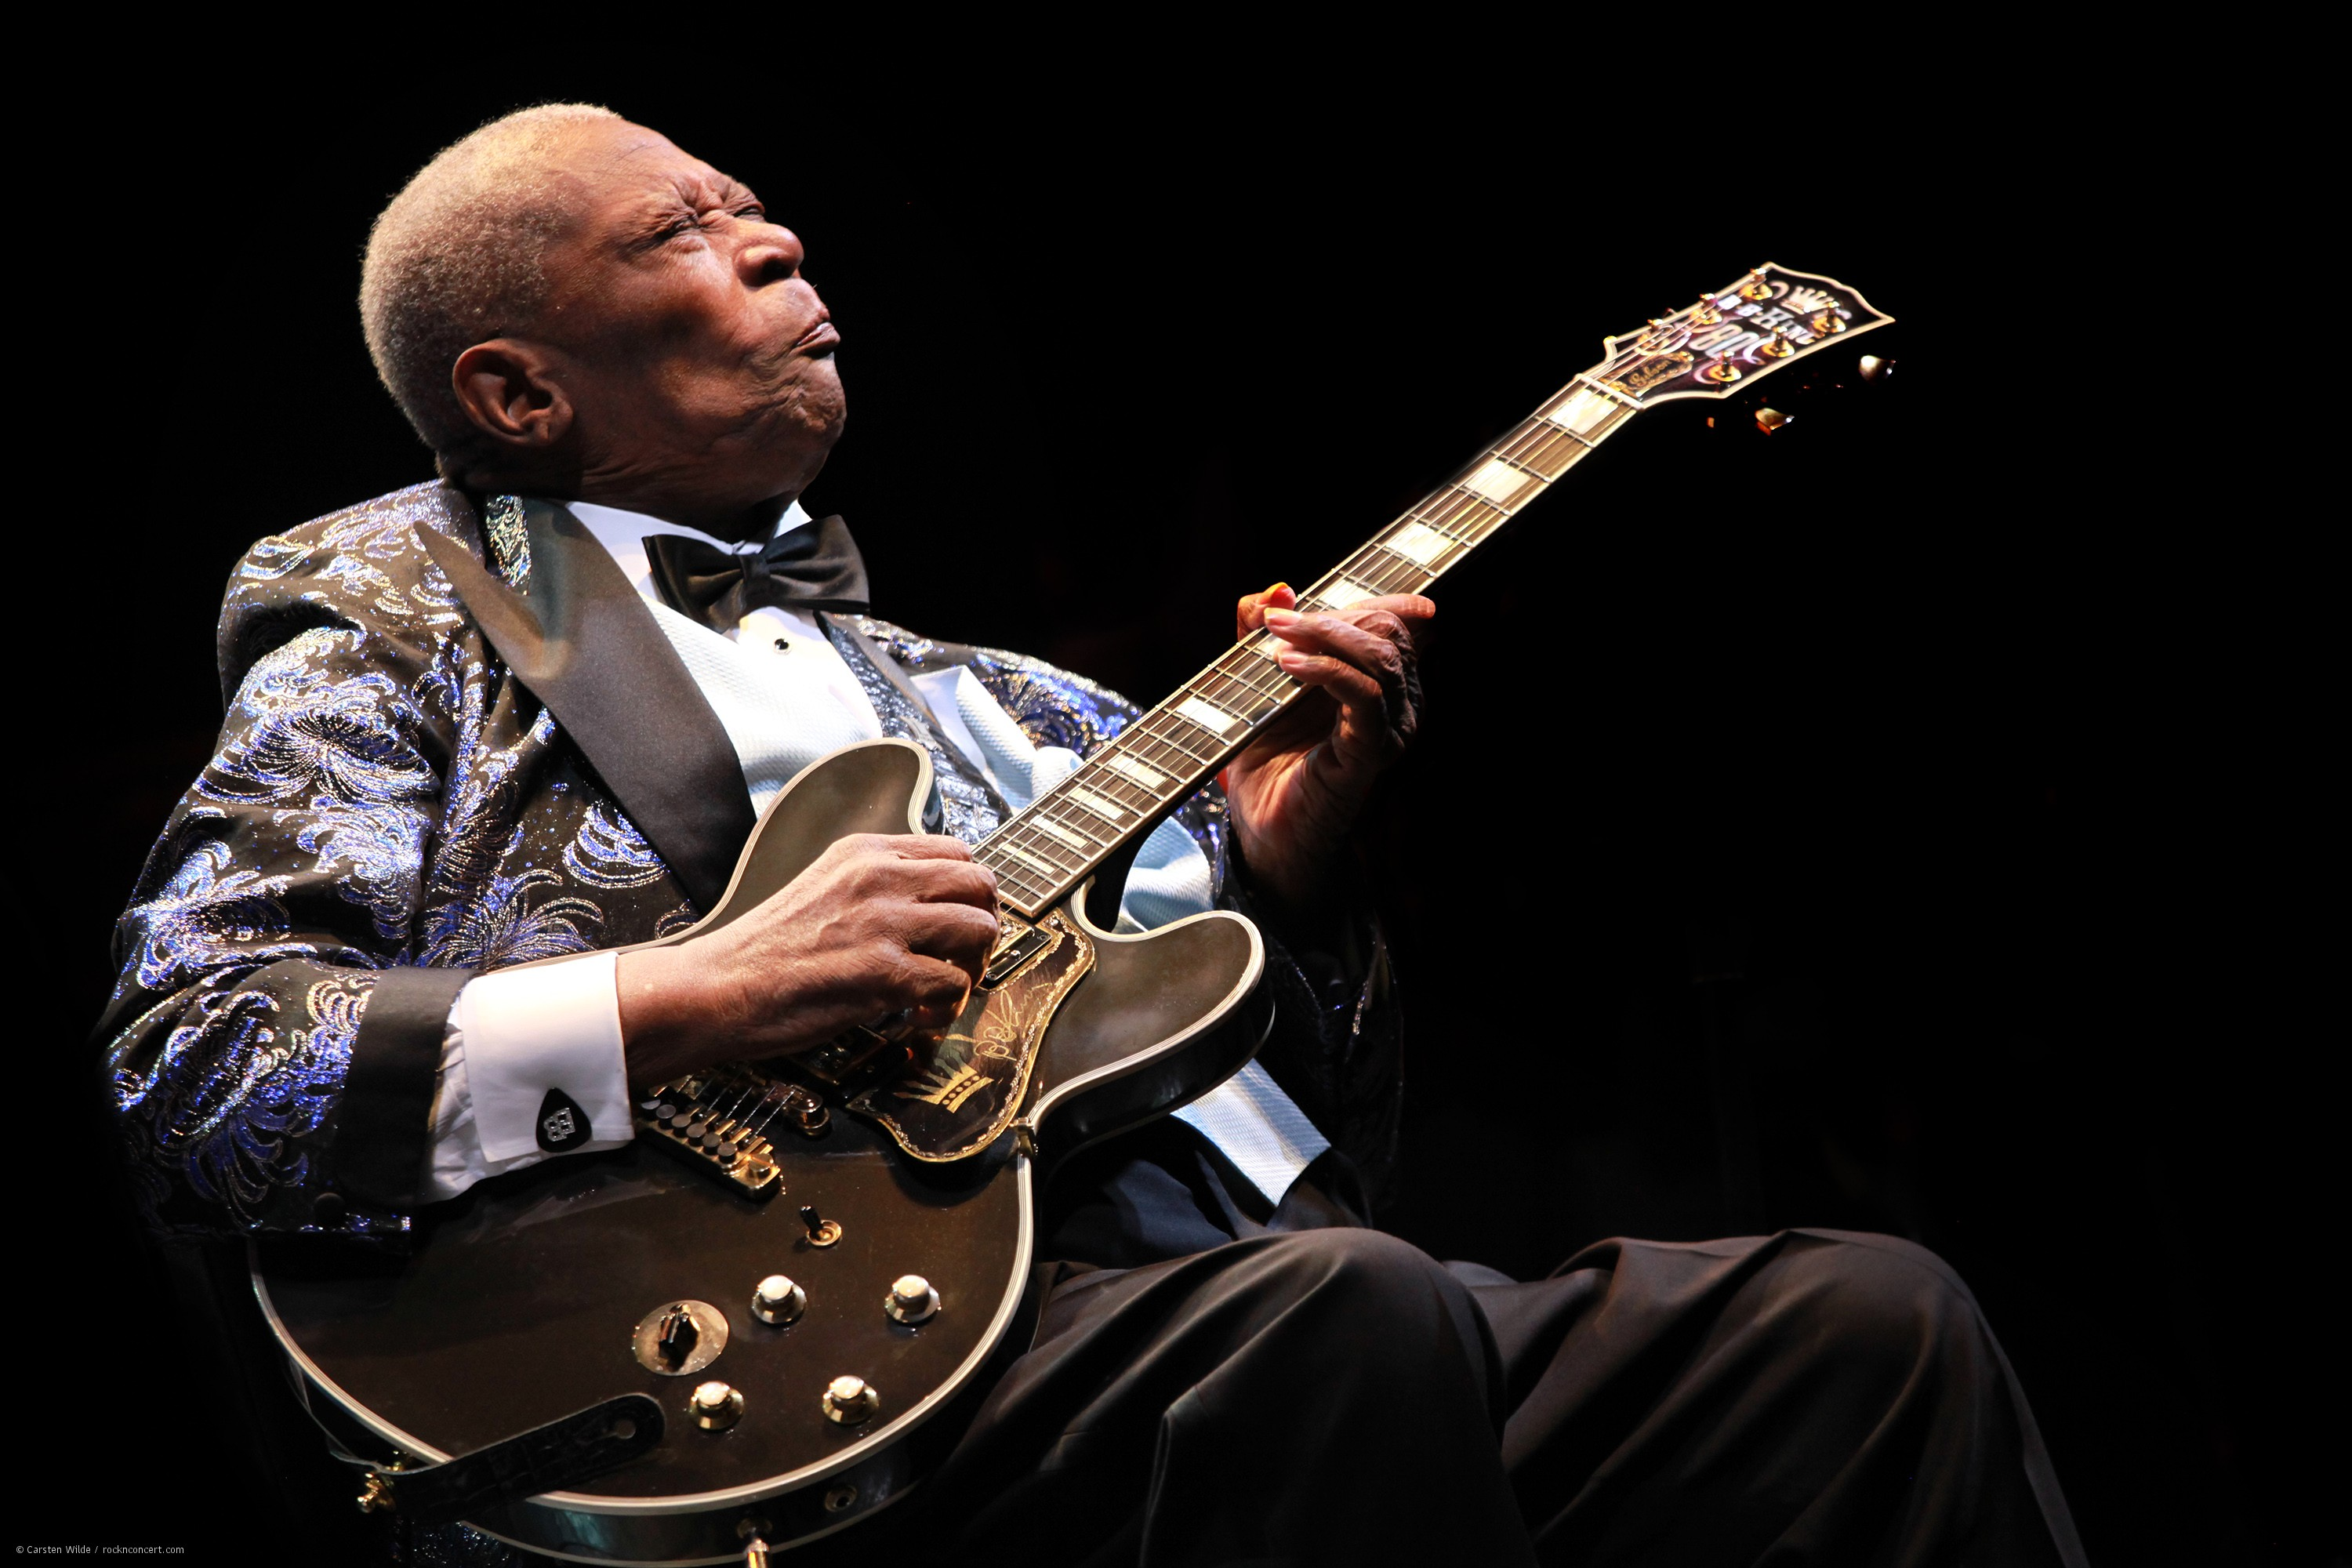 b b king and the roots of the blues downatthecrossroads. Black Bedroom Furniture Sets. Home Design Ideas